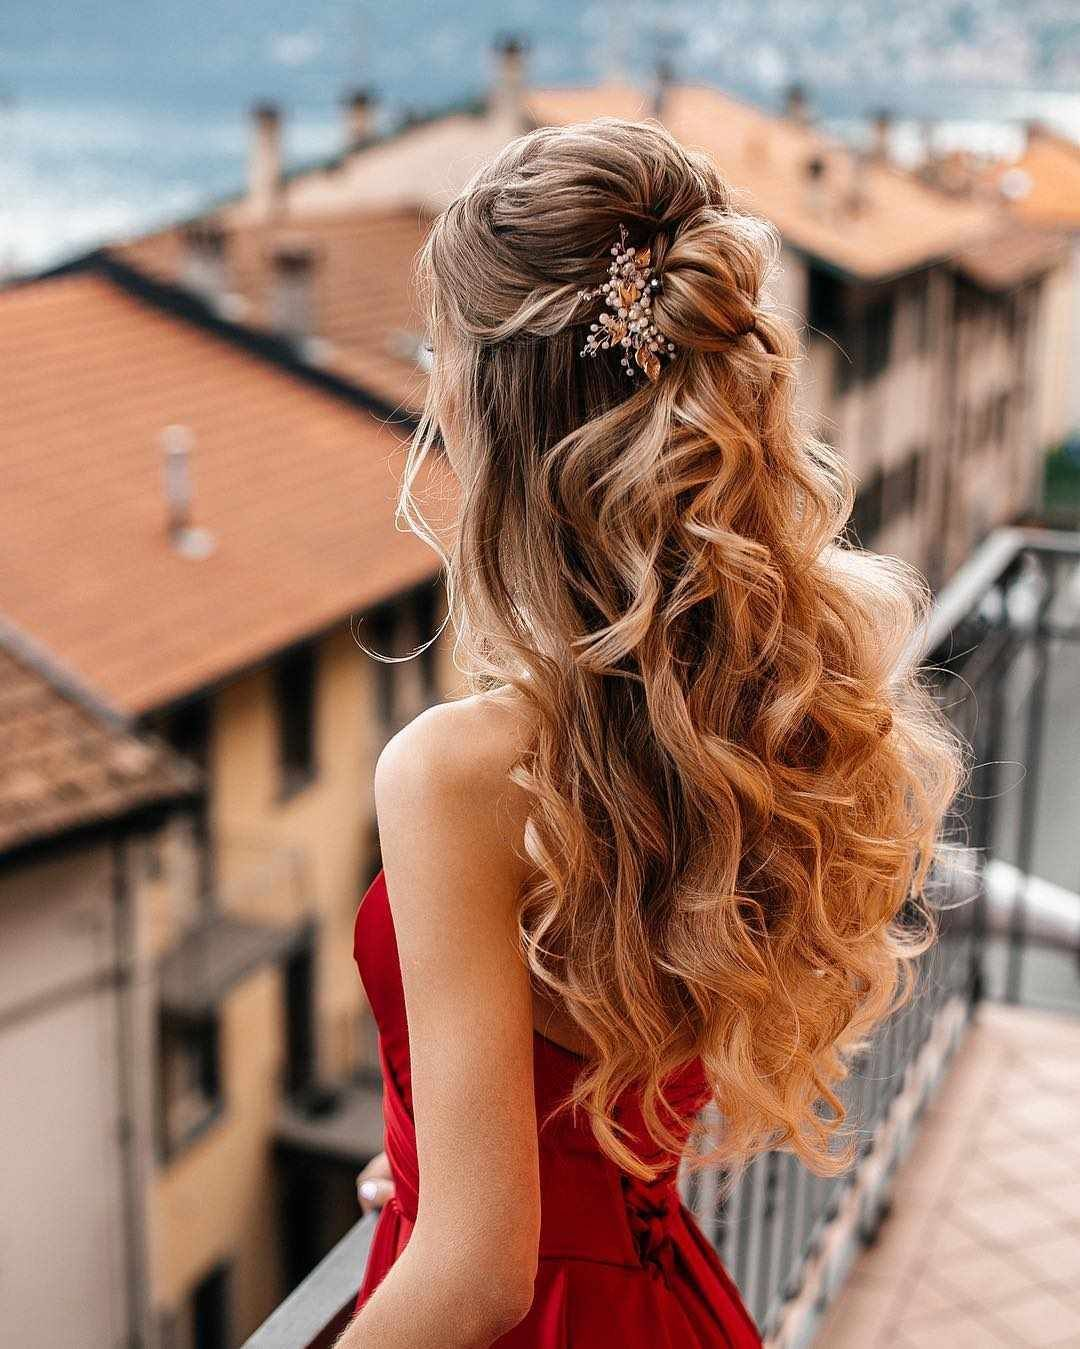 Trendy Style Hair Long Curls Waterfall With Stunning Colour 2020 - Page 37 of 51 - Veguci